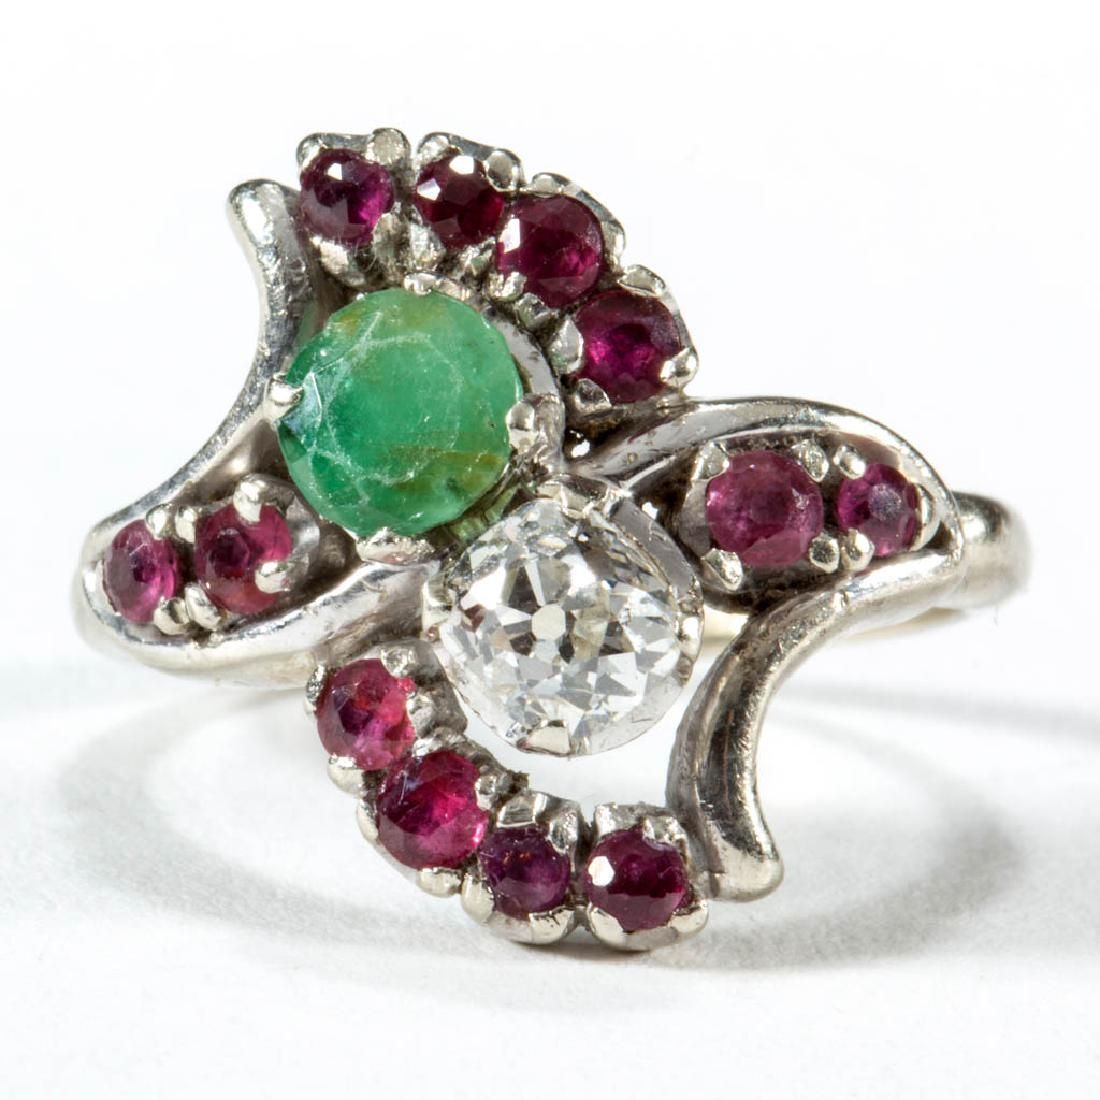 VINTAGE 14K WHITE GOLD DIAMOND, EMERALD, AND RUBY